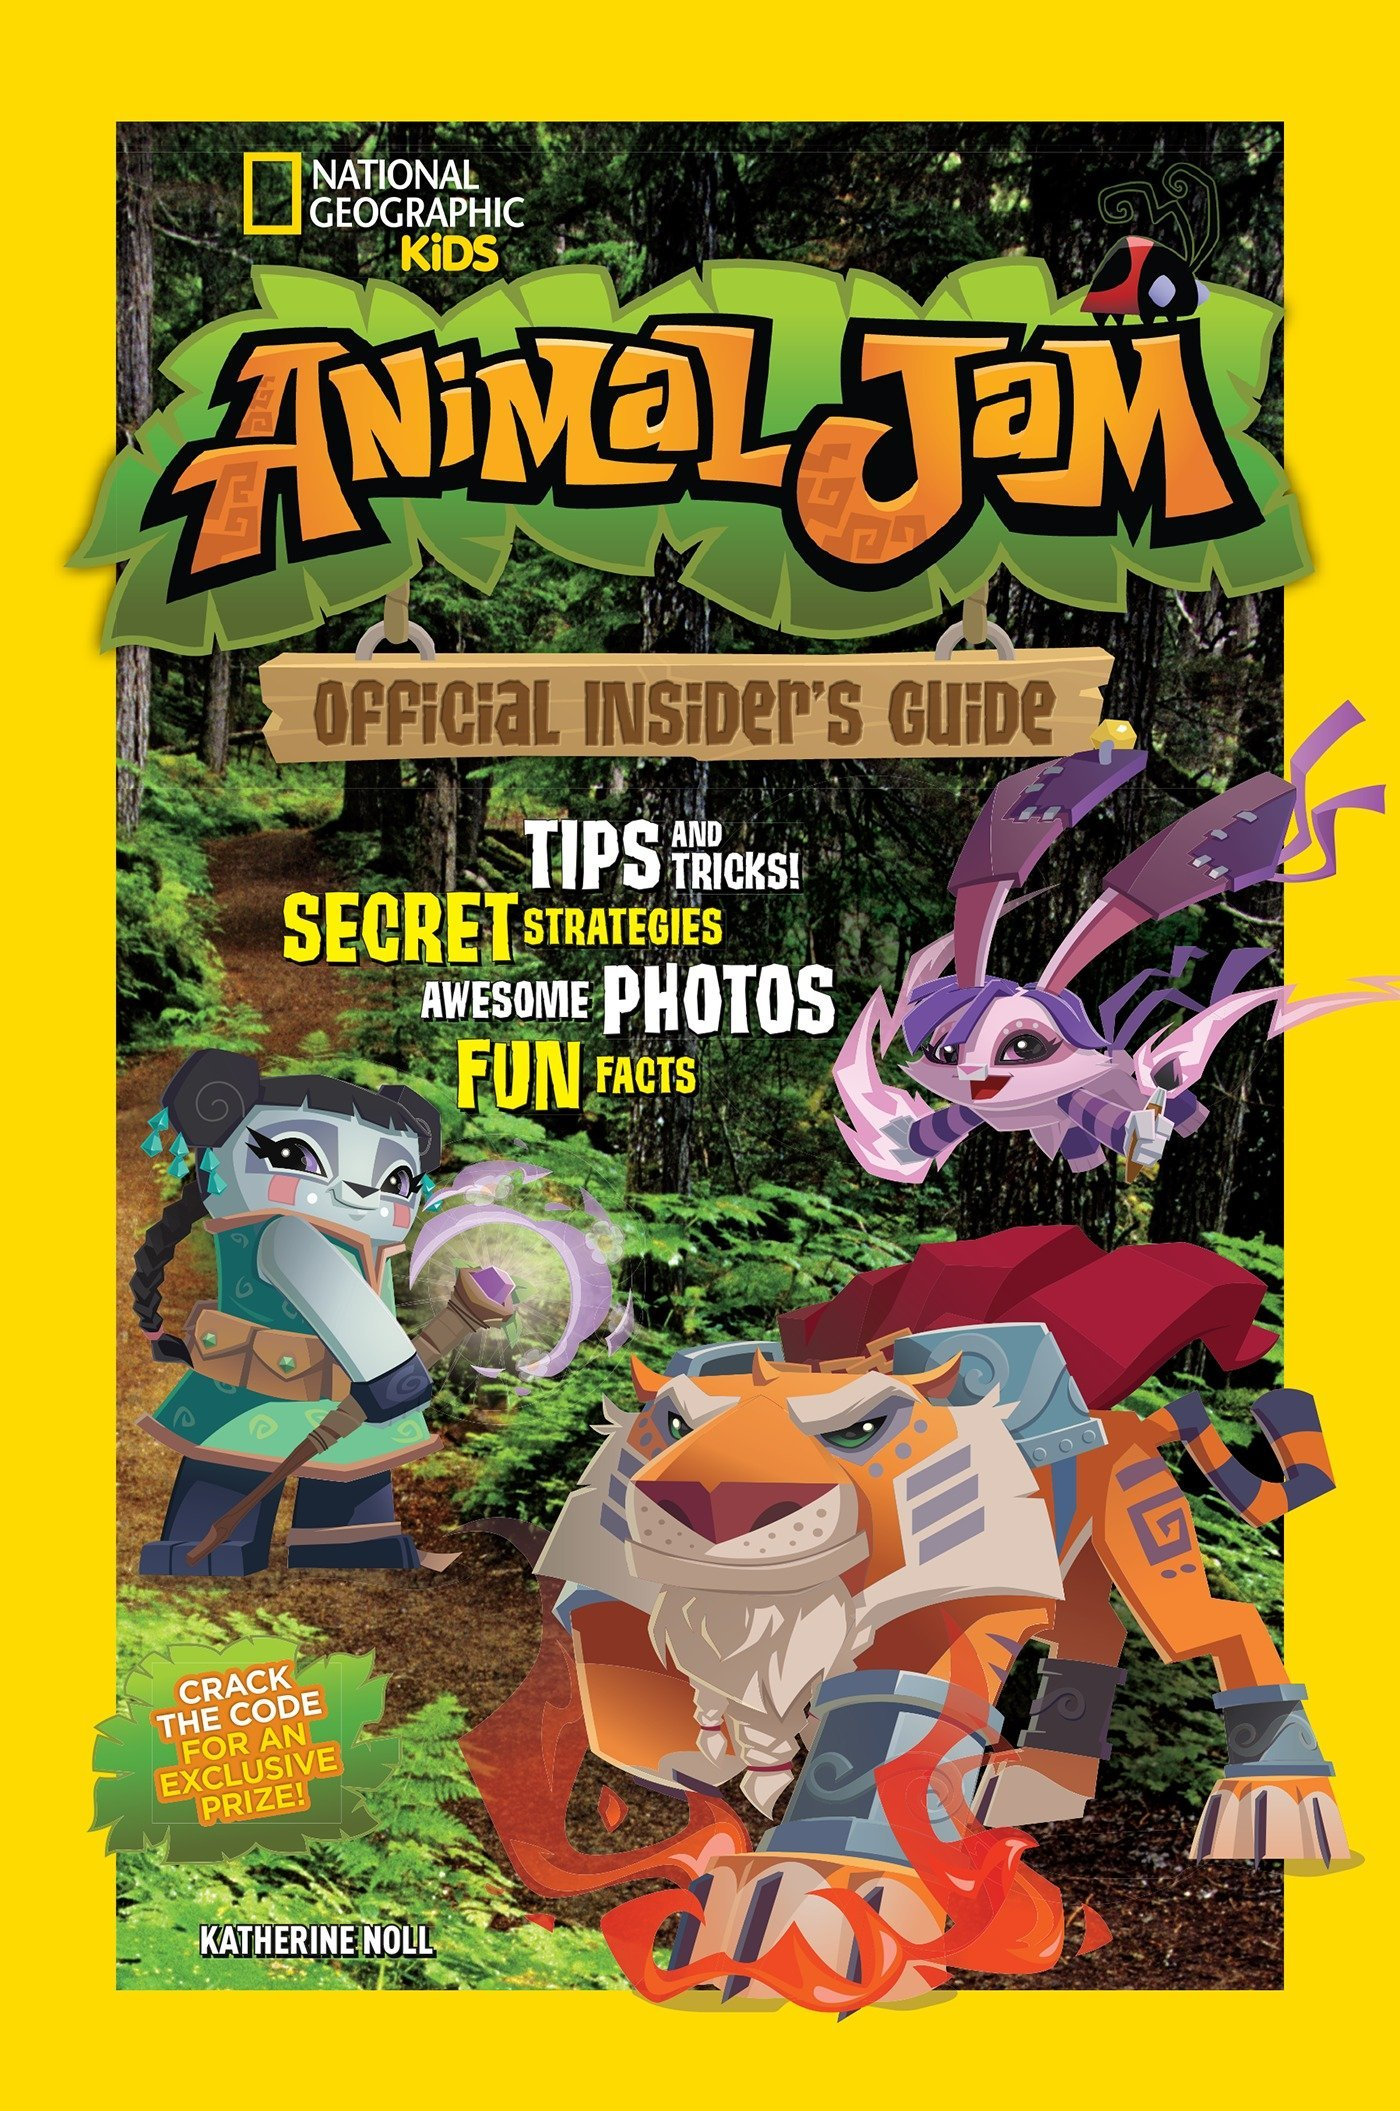 Animal Jam: Official Insider's Guide (National Geographic Kids